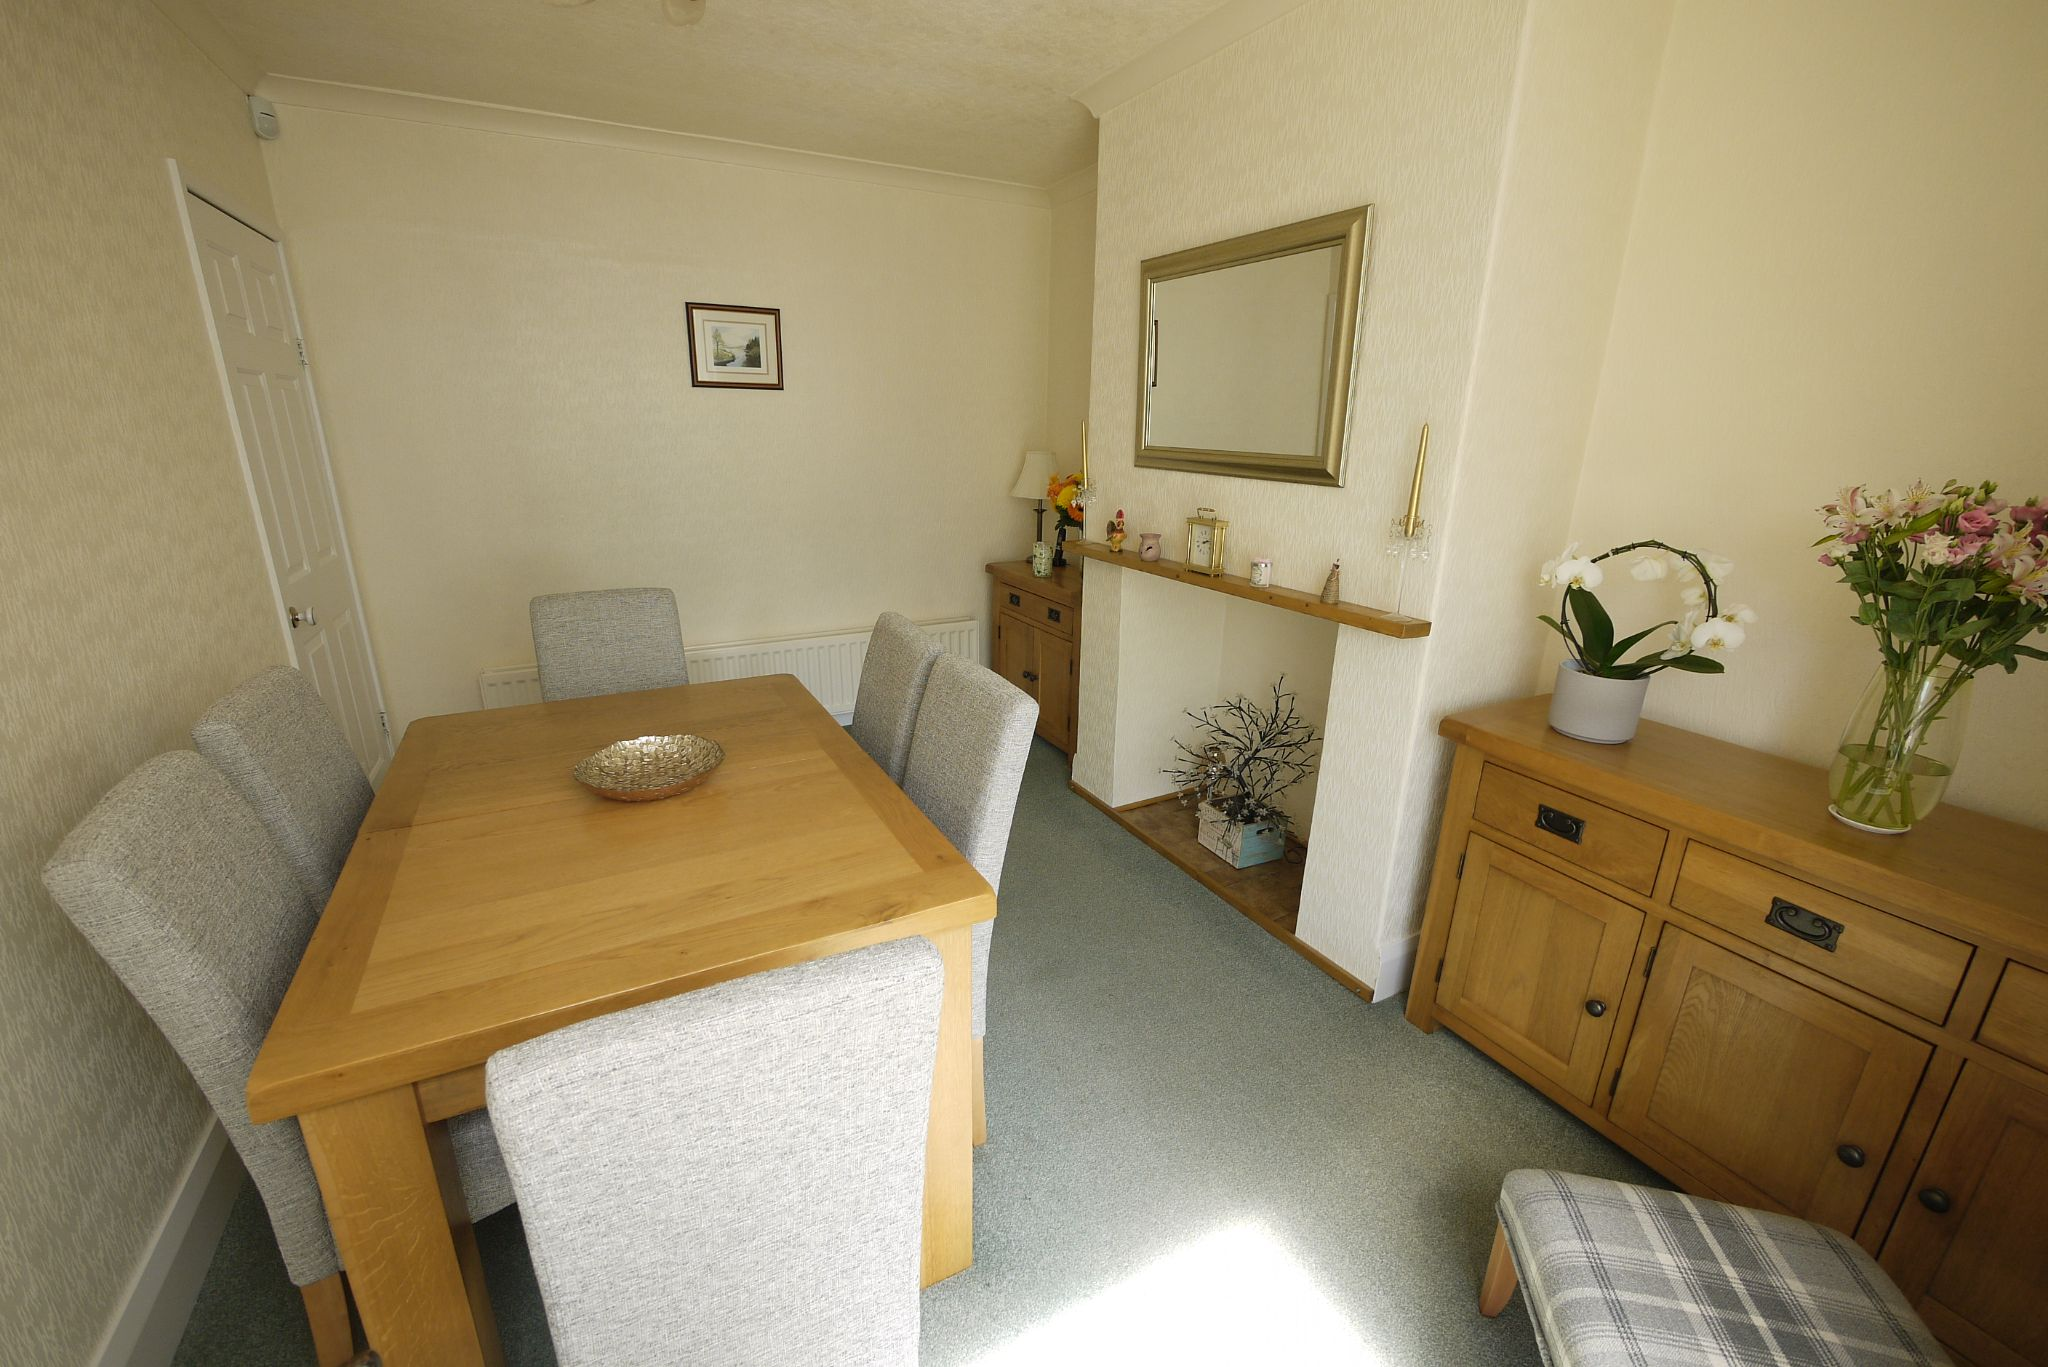 4 bedroom semi-detached house SSTC in Brighouse - Photograph 6.